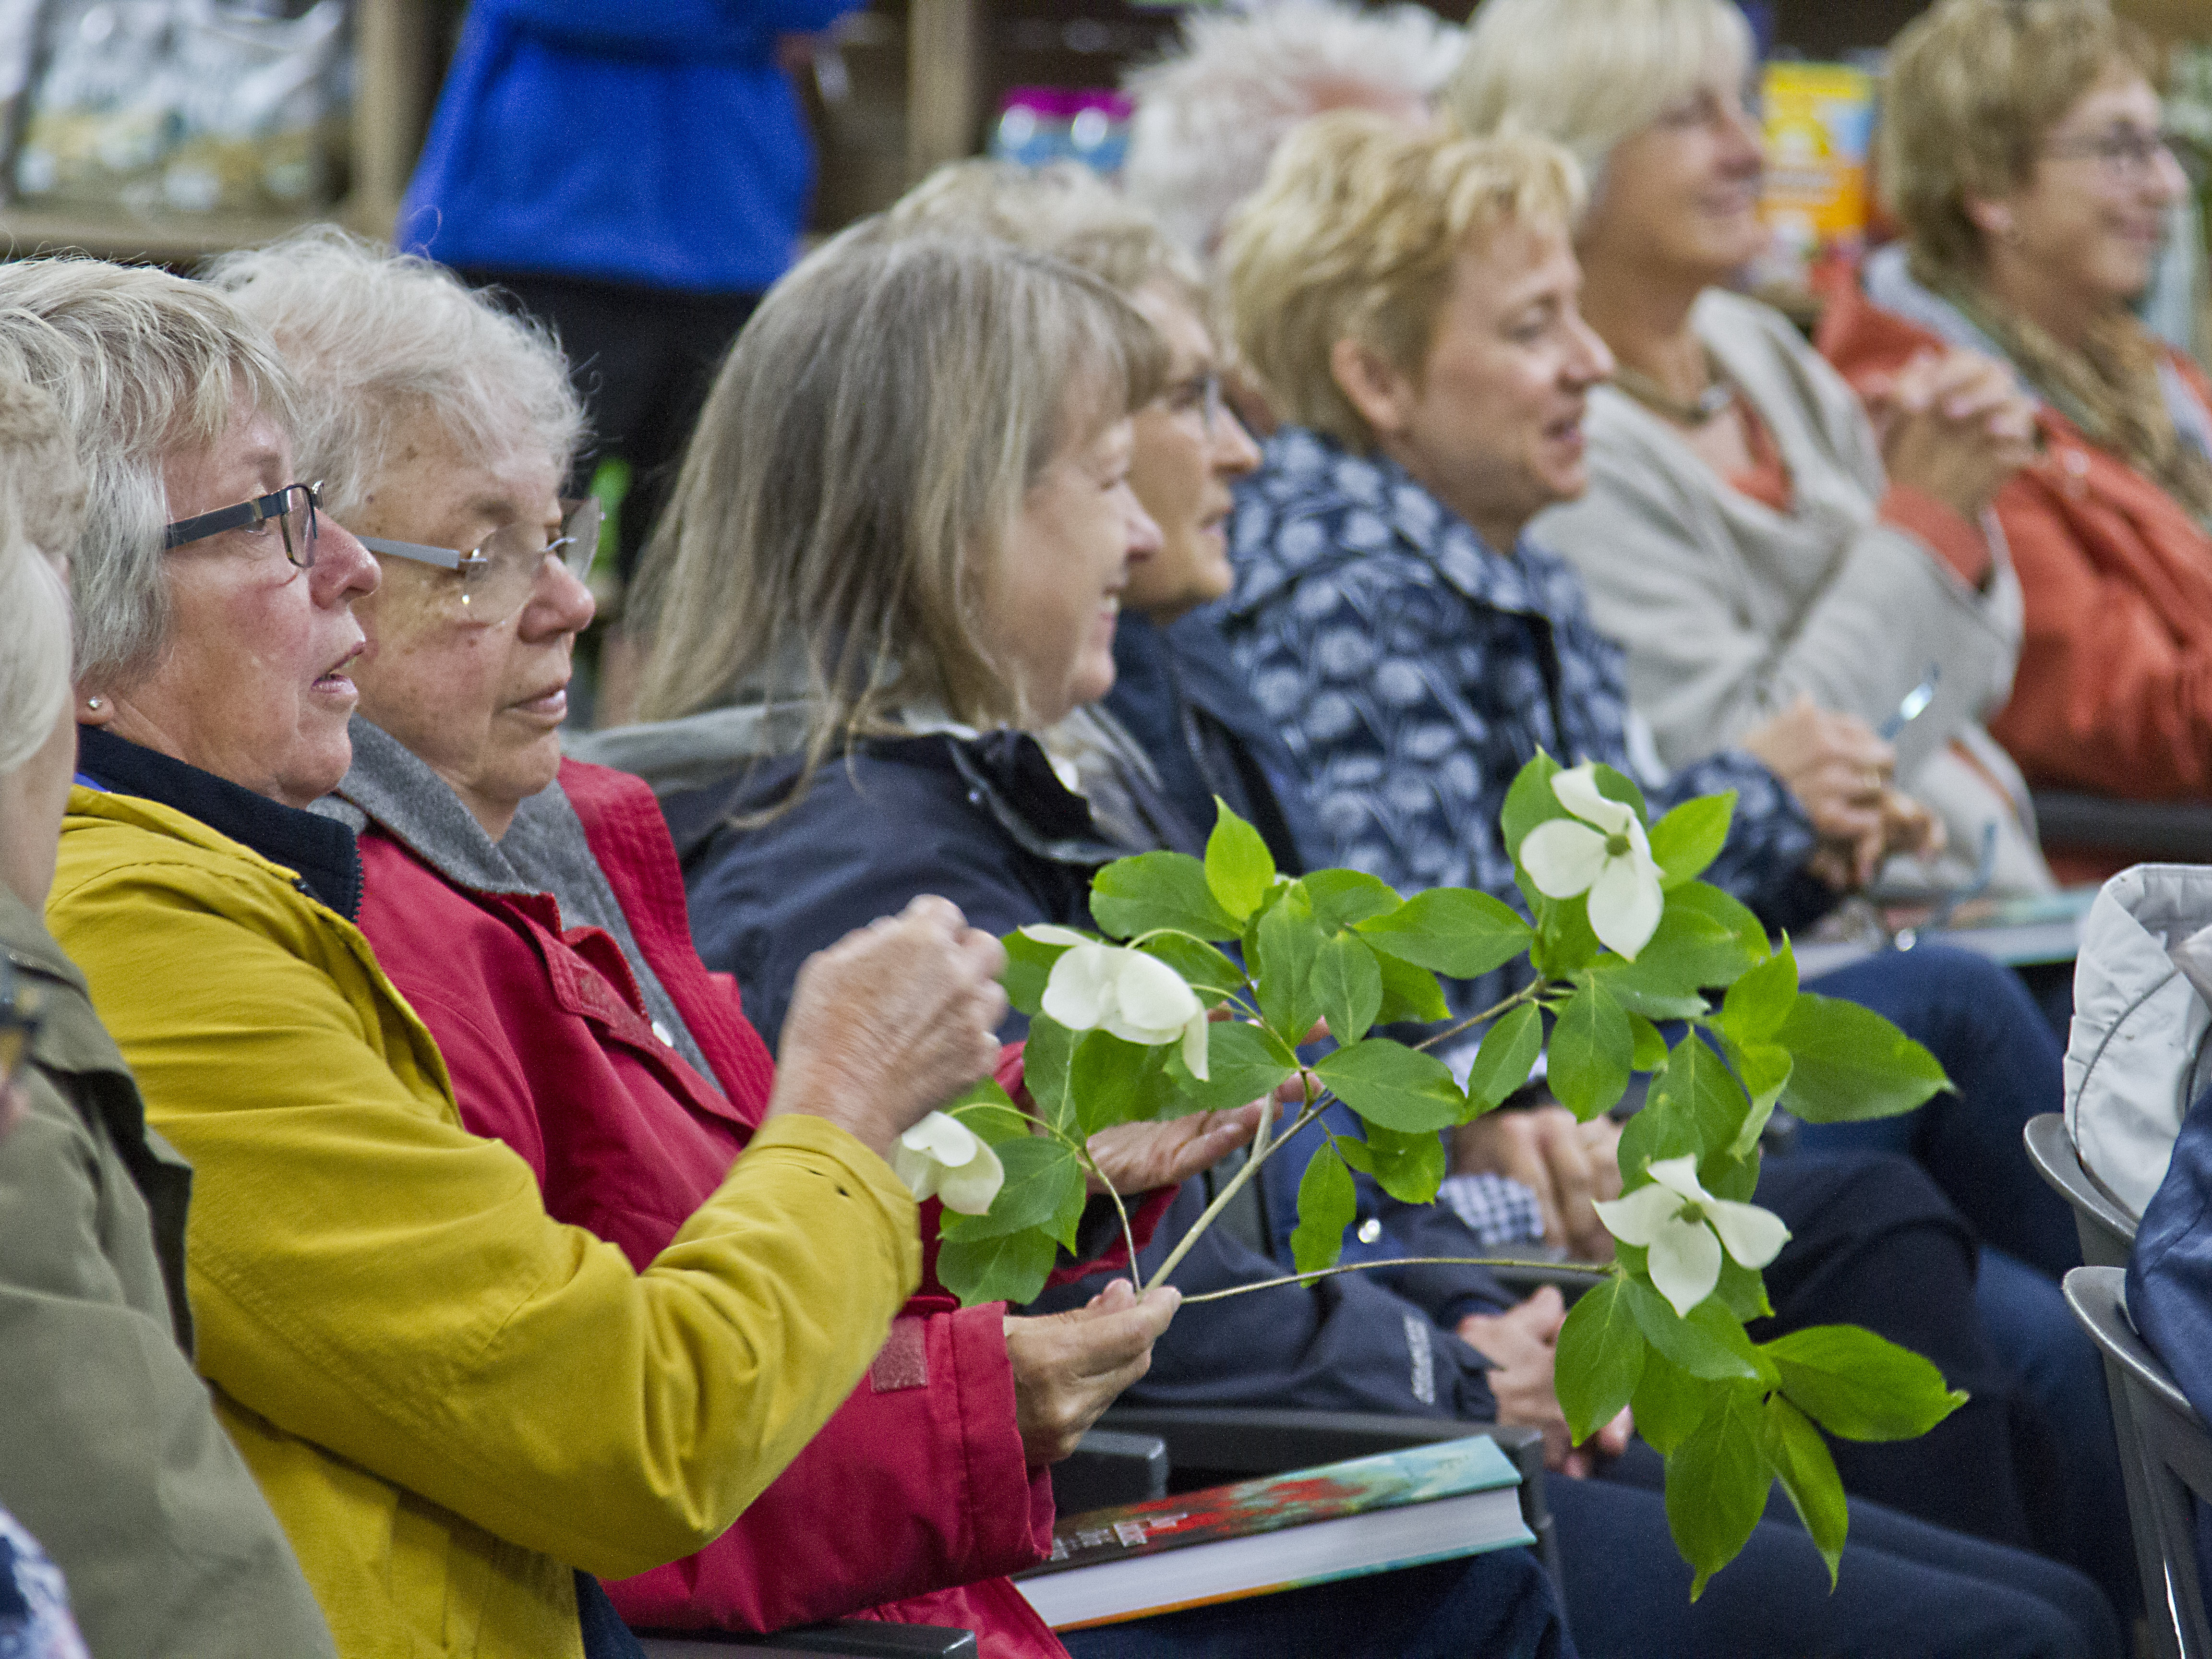 An opportunity to examine new plants and listen to Roy's anecdotes is totally captivating.